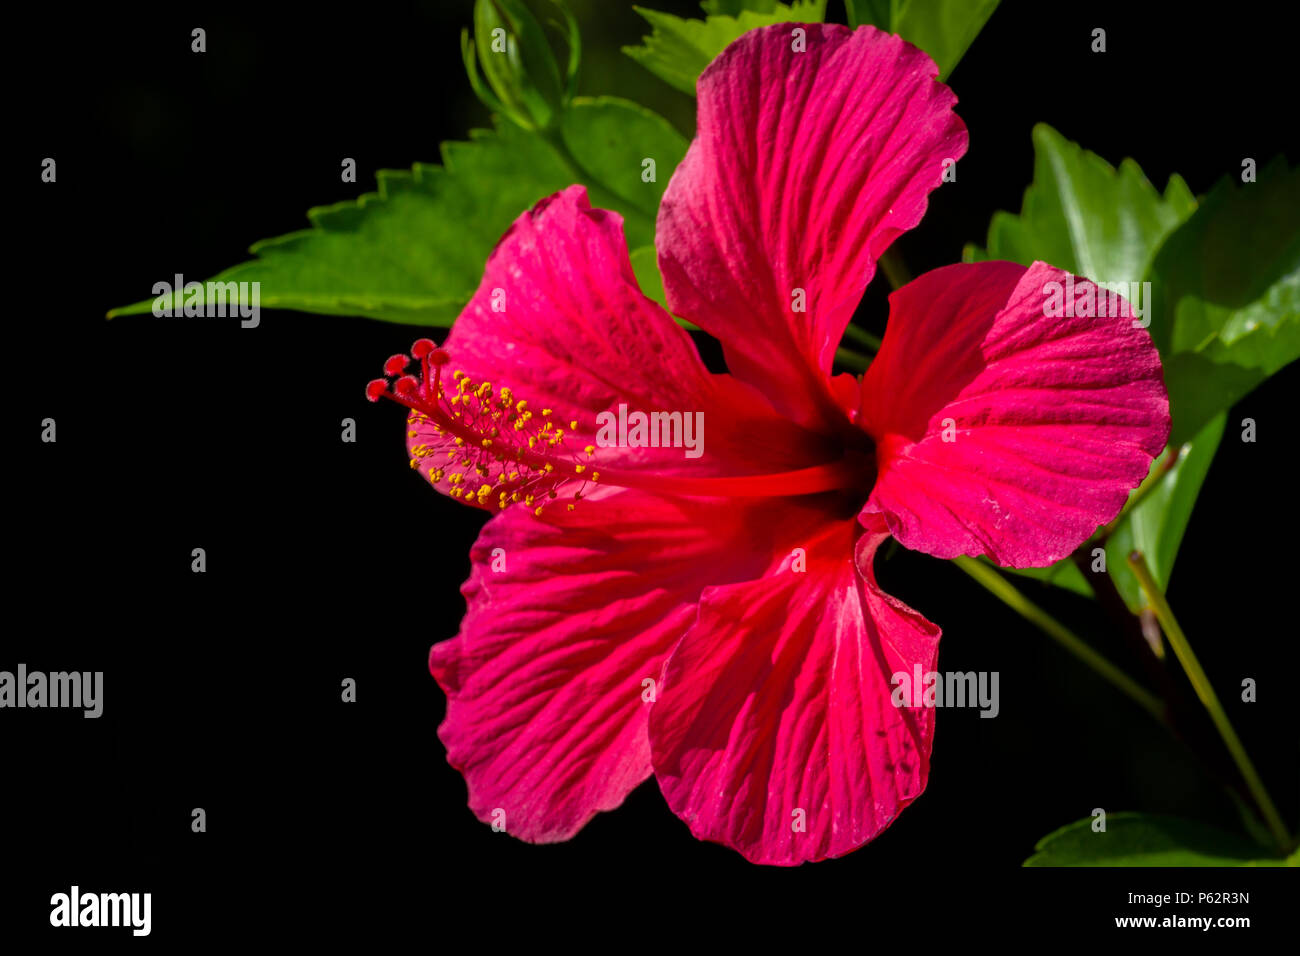 Tropical red hibiscus flower with leaves on black background stock tropical red hibiscus flower with leaves on black background izmirmasajfo